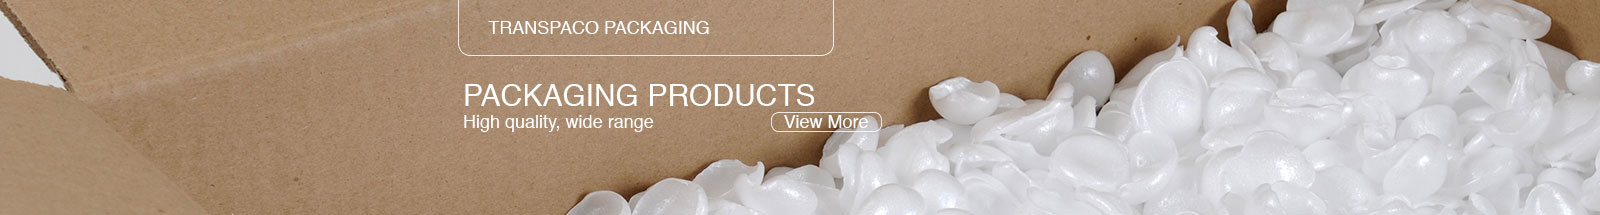 TRANSPACO PACKAGING - Packaging products